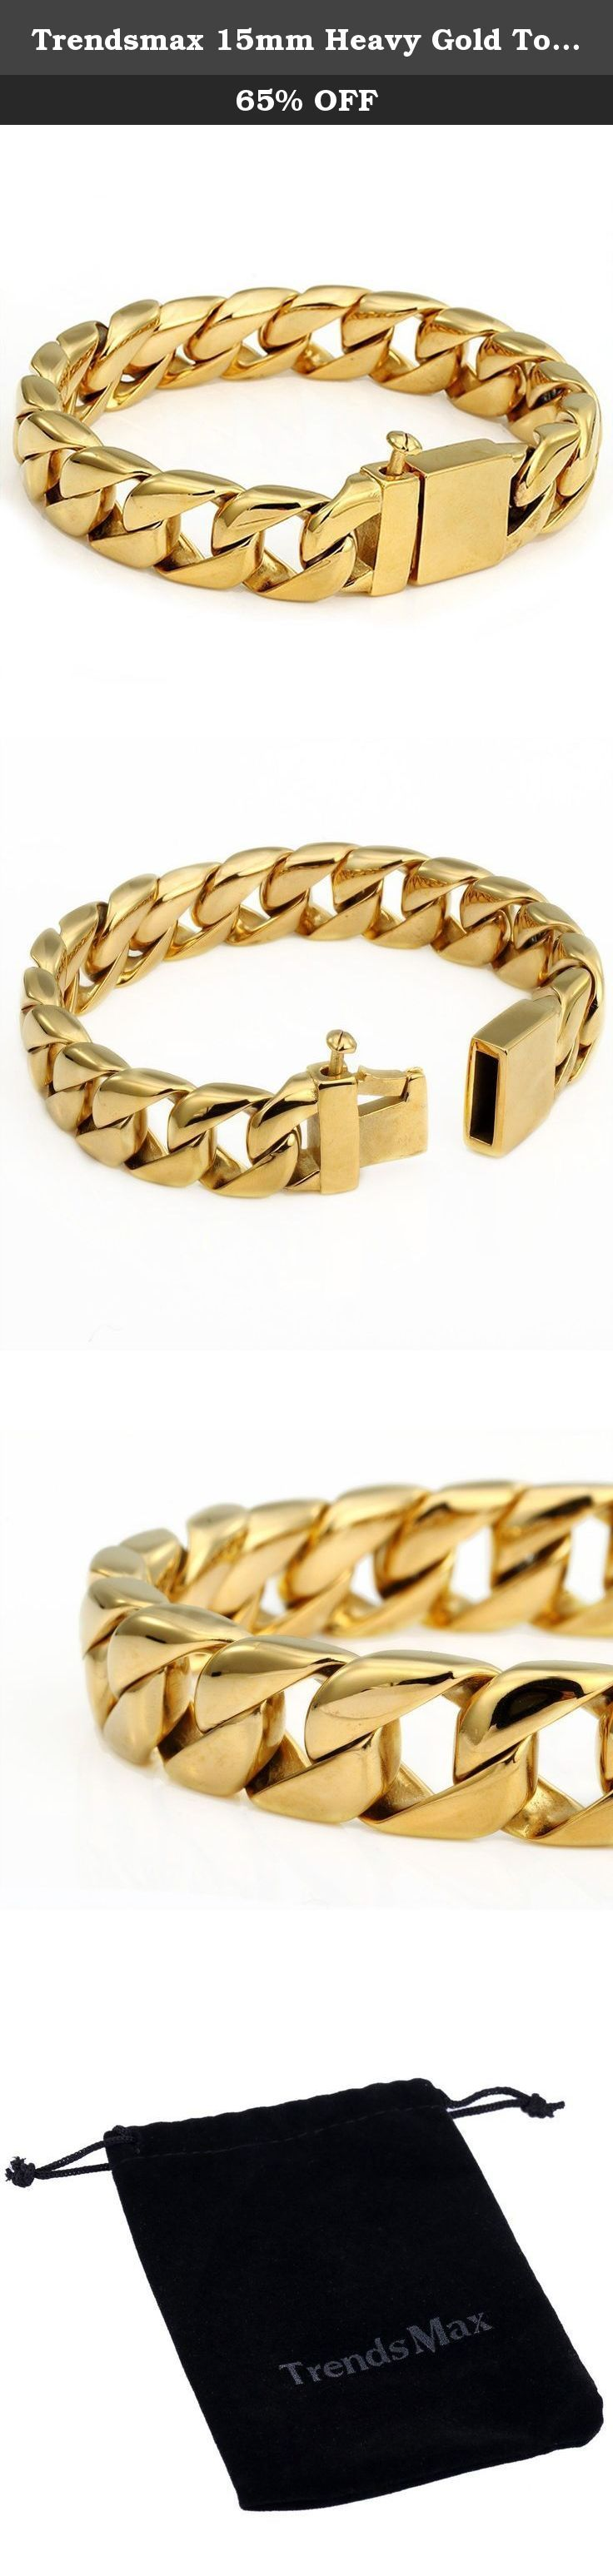 Trendsmax 15mm Heavy Gold Tone Round Curb Link Chain Mens Jewelry 316L Stainless Steel Bracelet. Trendsmax Heavy 15mm Mens Jewelry Chain Curb Link Silver Tone 316L Stainless Steel Bracelet,Material is 316L Stainless Steel,High Quanlity! Perfect Gift for Father's Day, Christmas Gift.